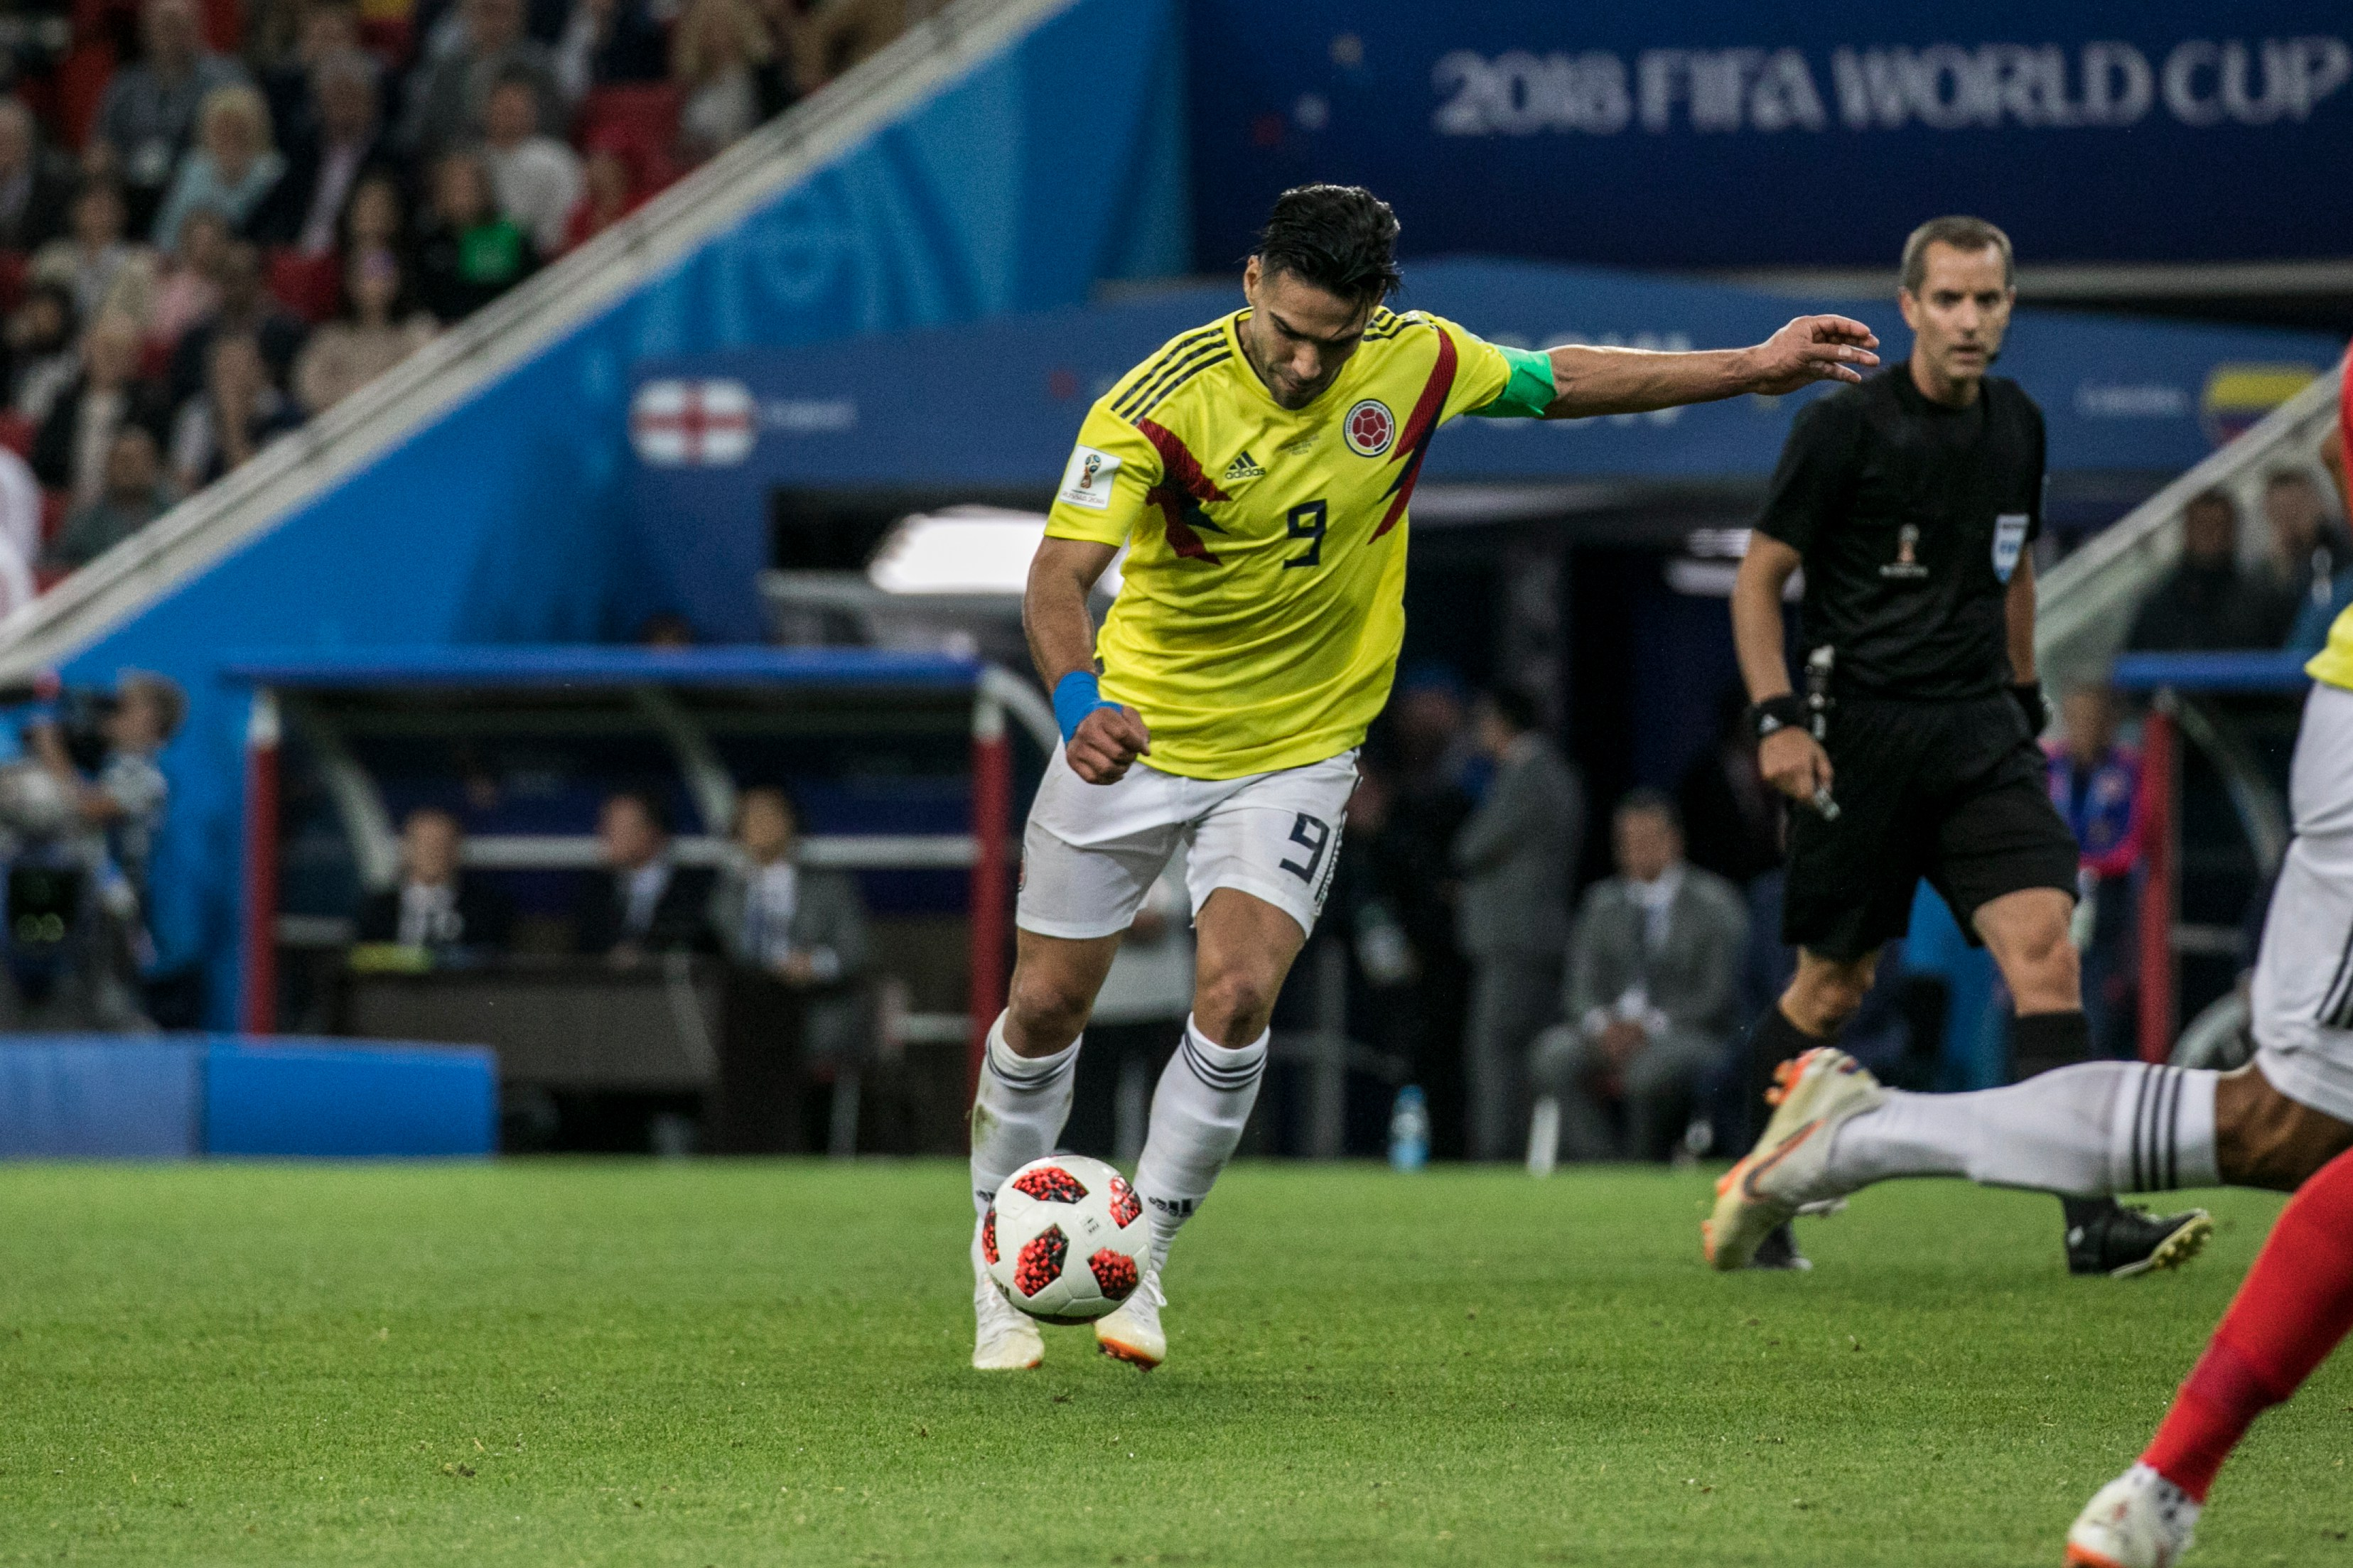 Colombia tops Venezuela 2-1 in first match post-World Cup